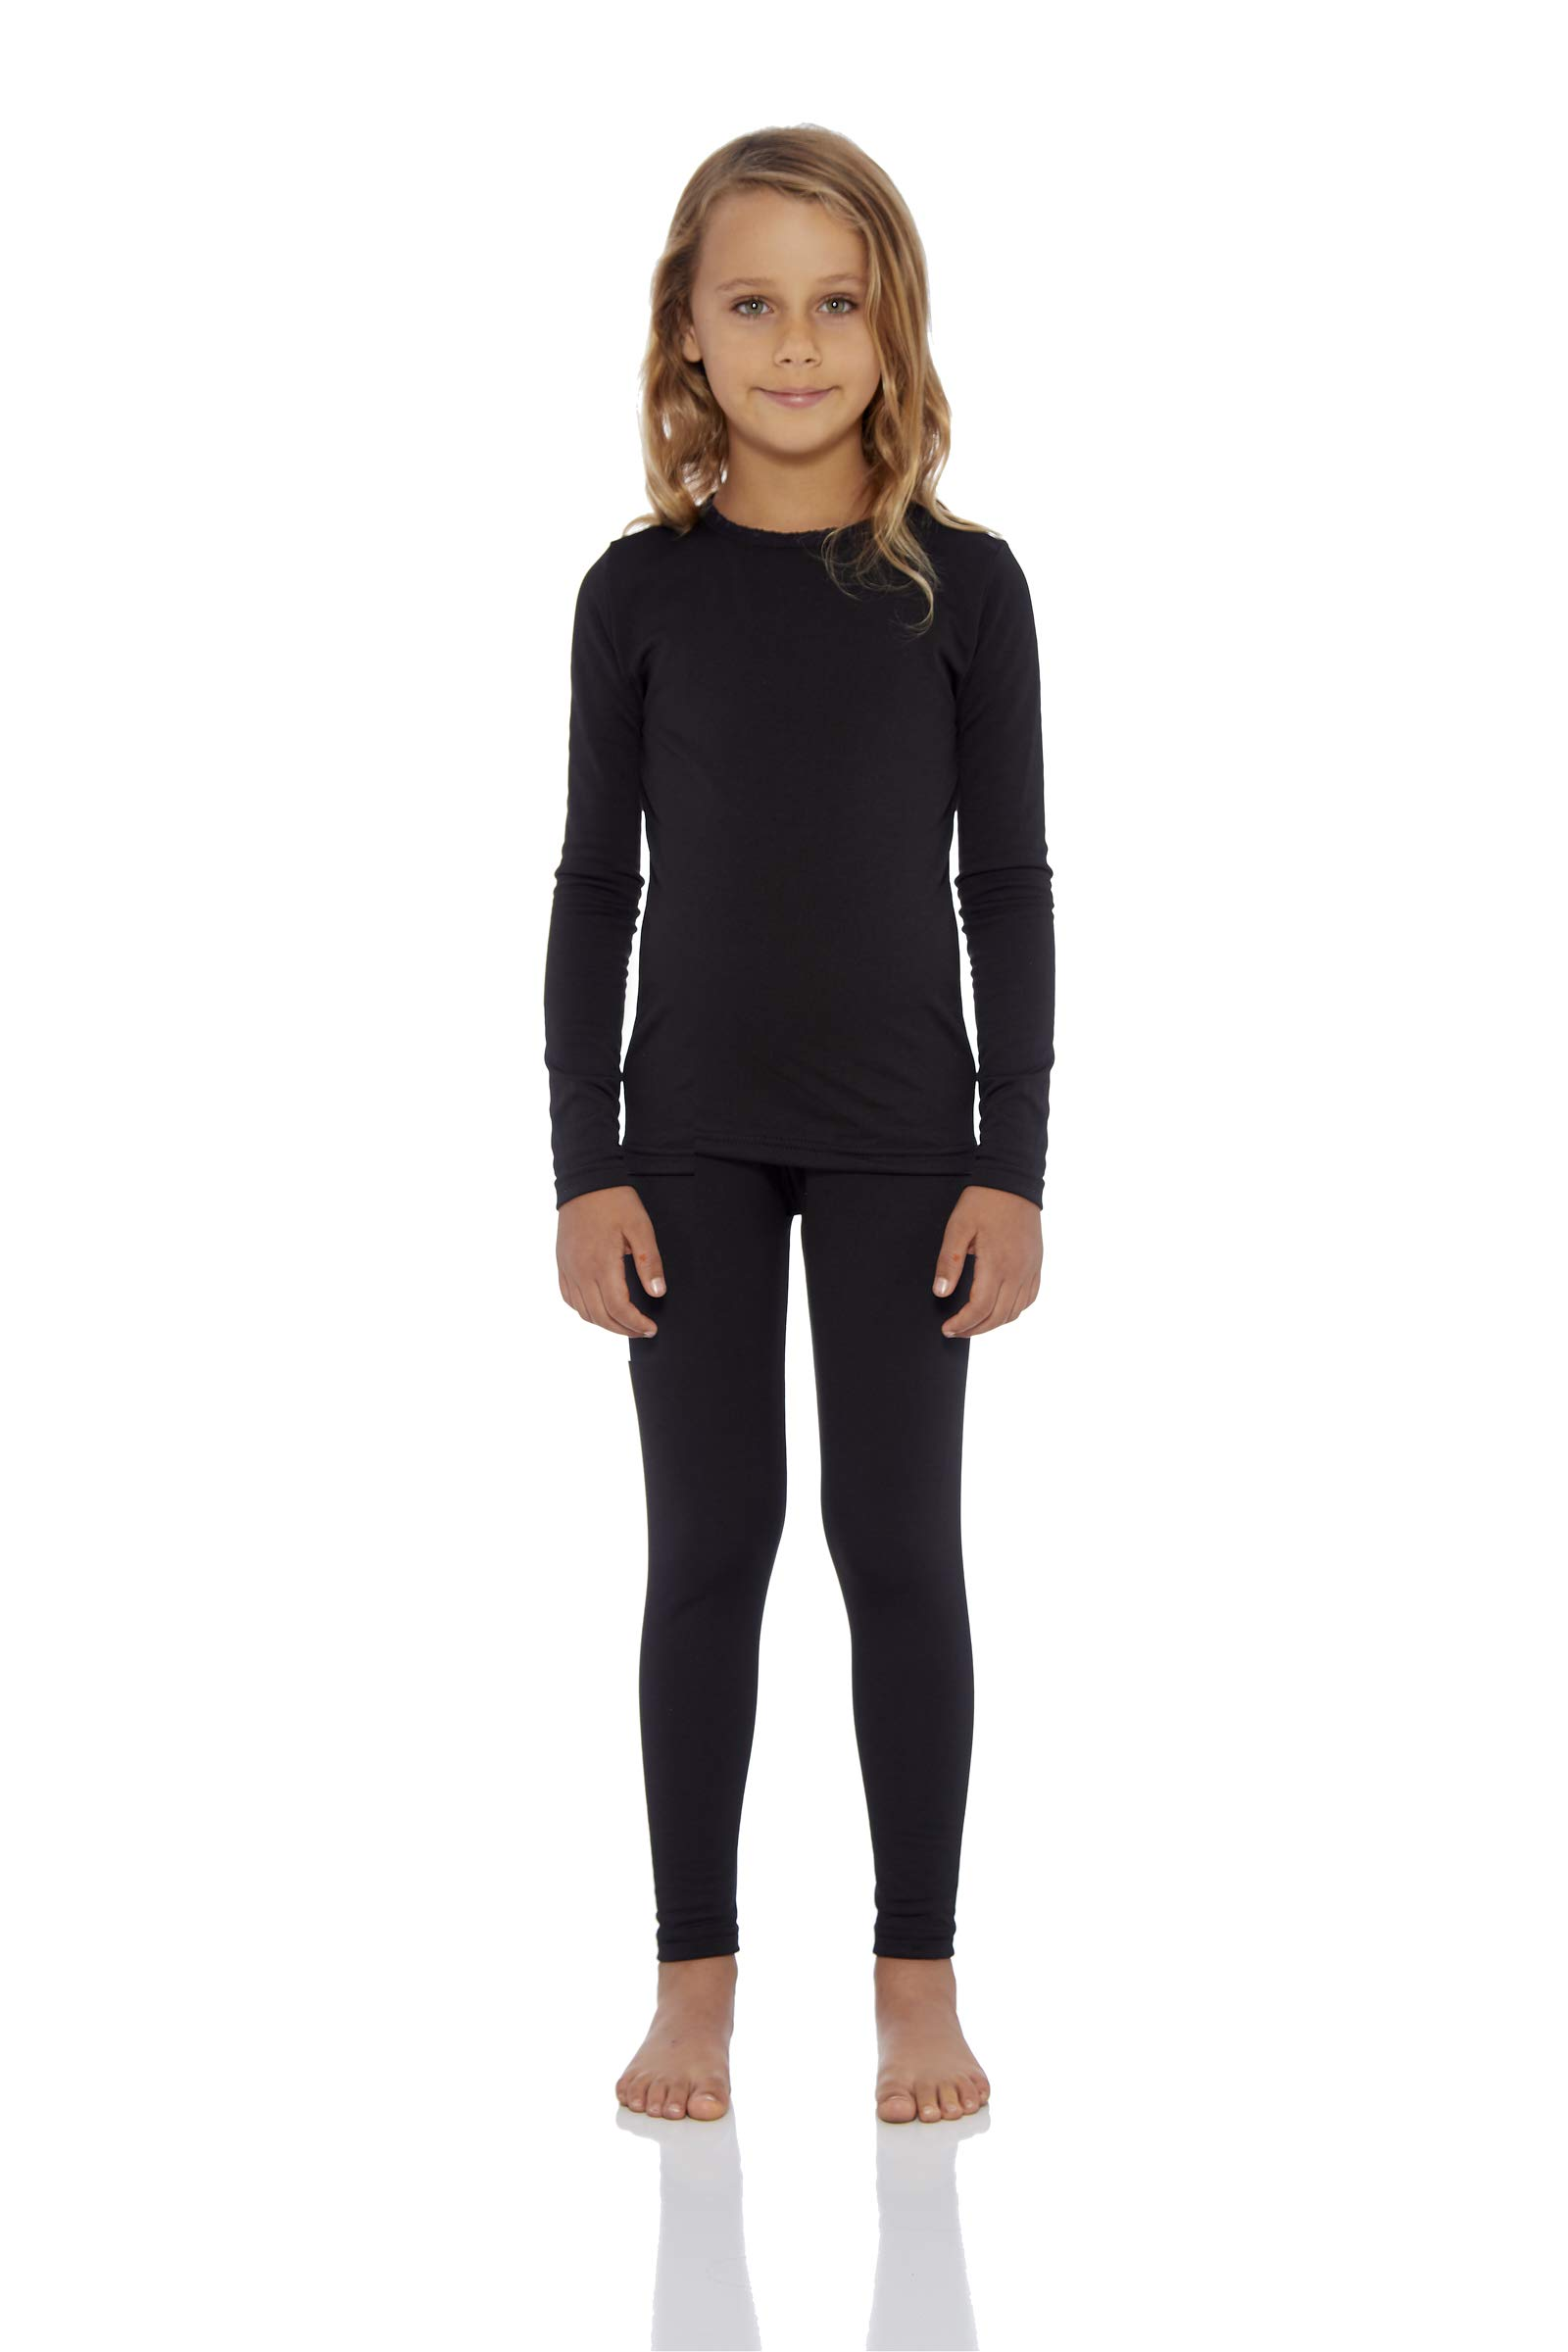 Rocky Girl's Smooth Knit Thermal Underwear 2PC Set Long John Top and Bottom Pajamas (Black, L) by Rocky